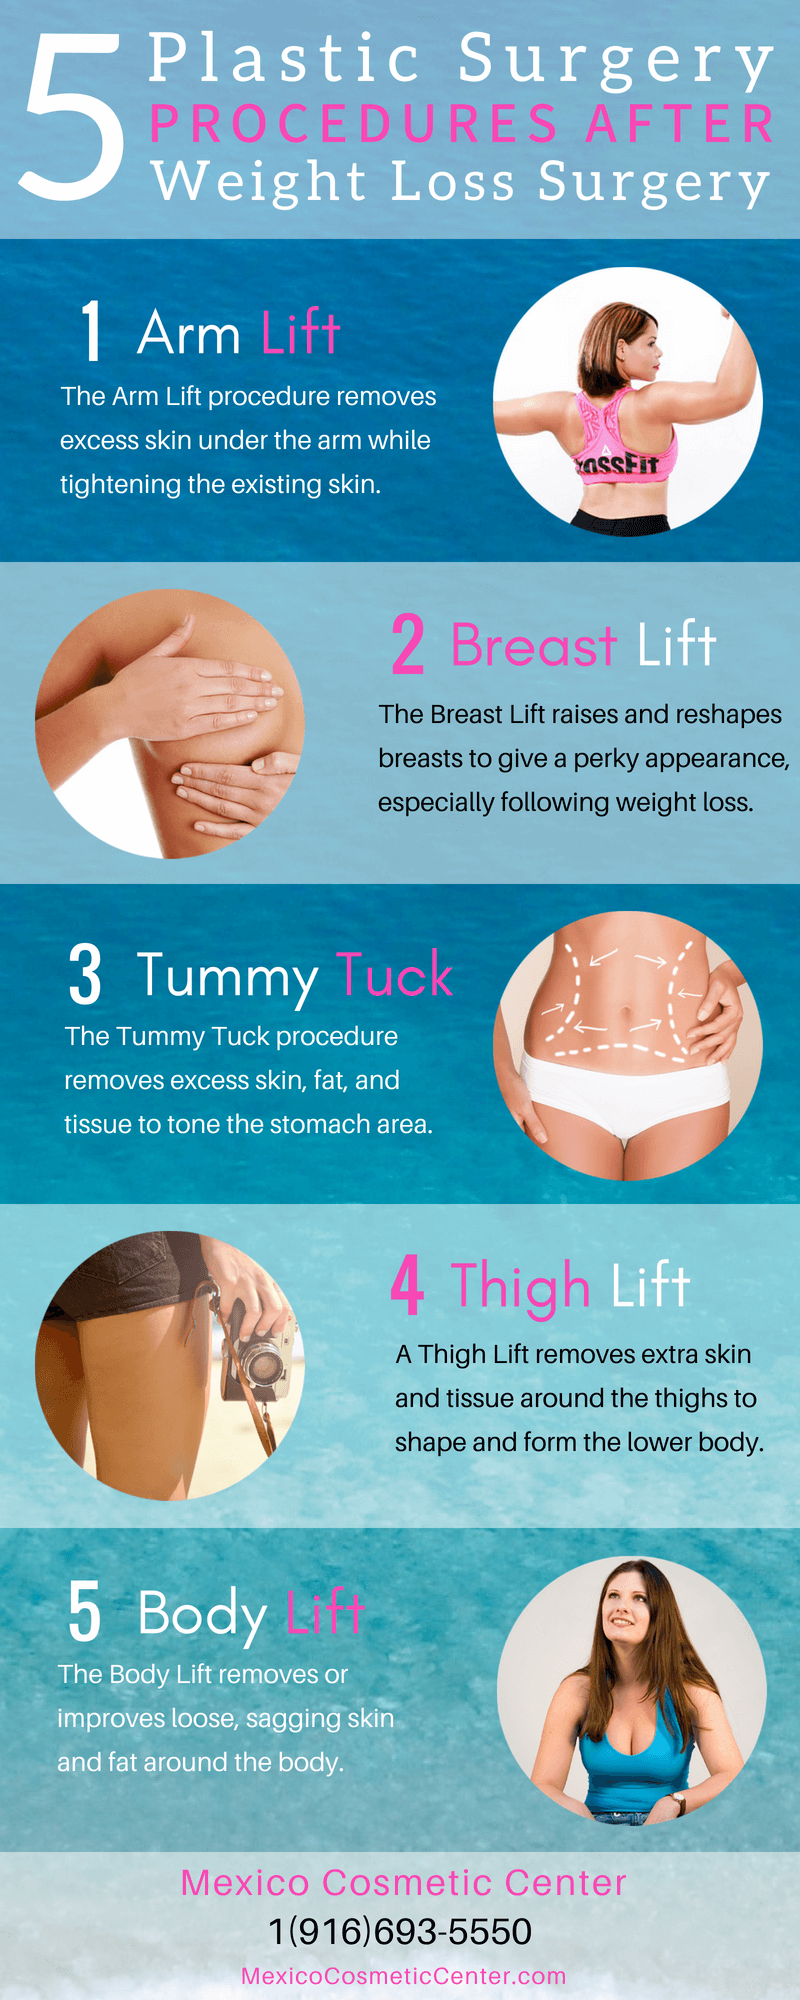 5 Plastic Surgery Procedures After Weight Loss Surgery Infographic